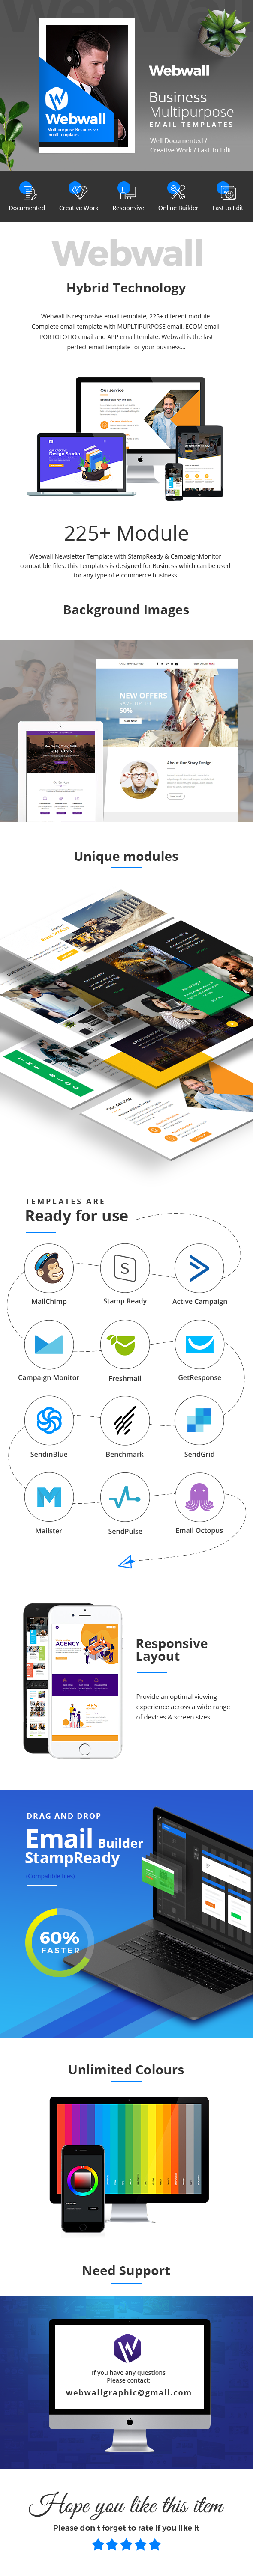 Webwall - Business Responsive Email Template + StampReady & CampaignMonitor compatible files - 1